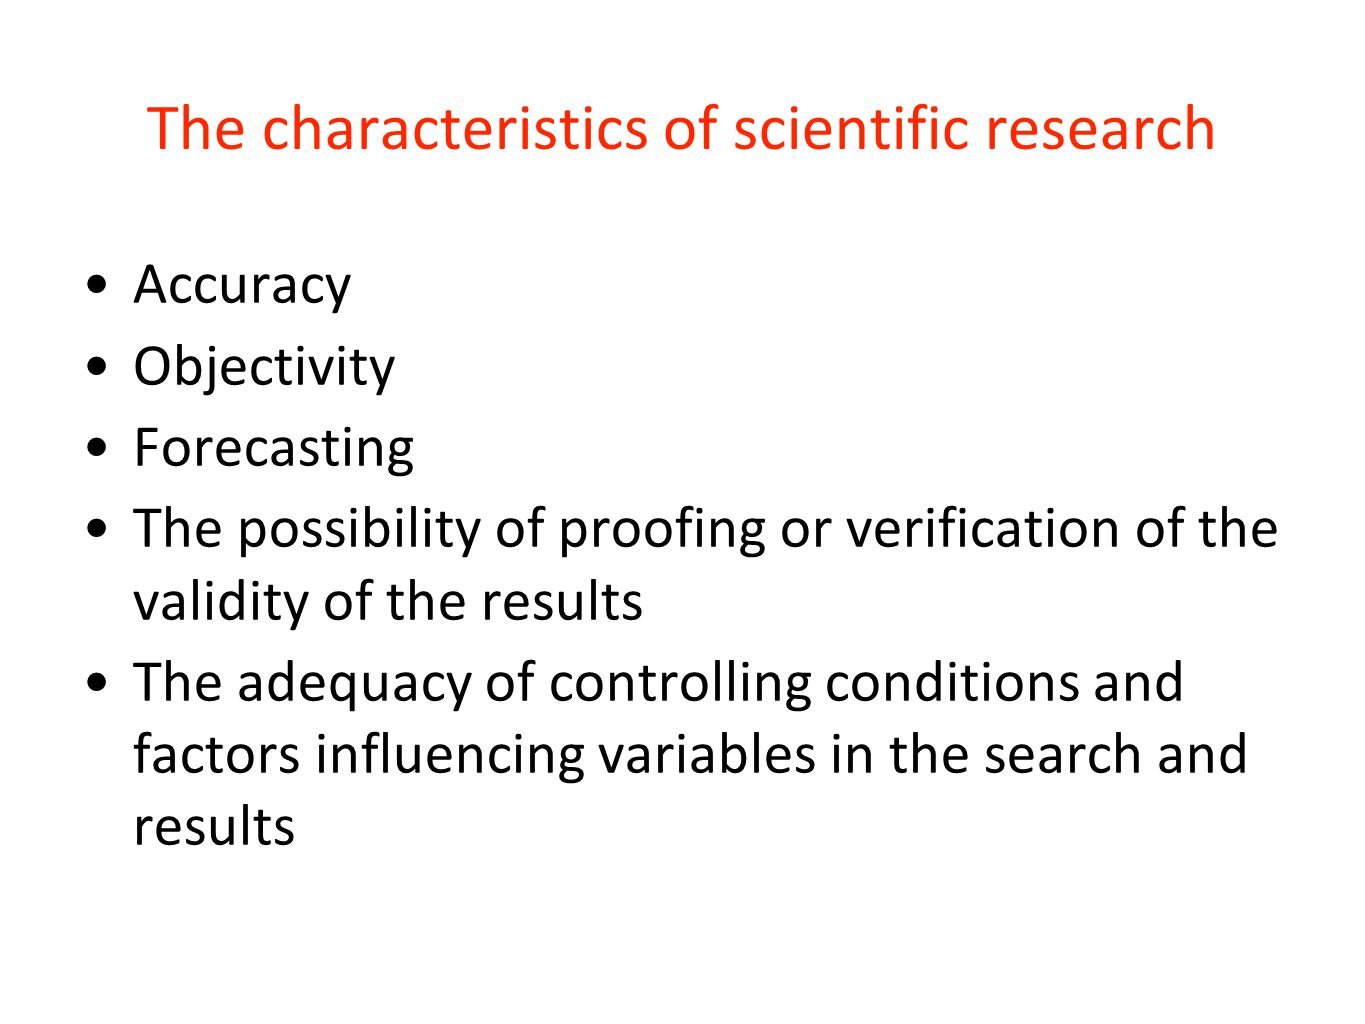 The characteristics of scientific research